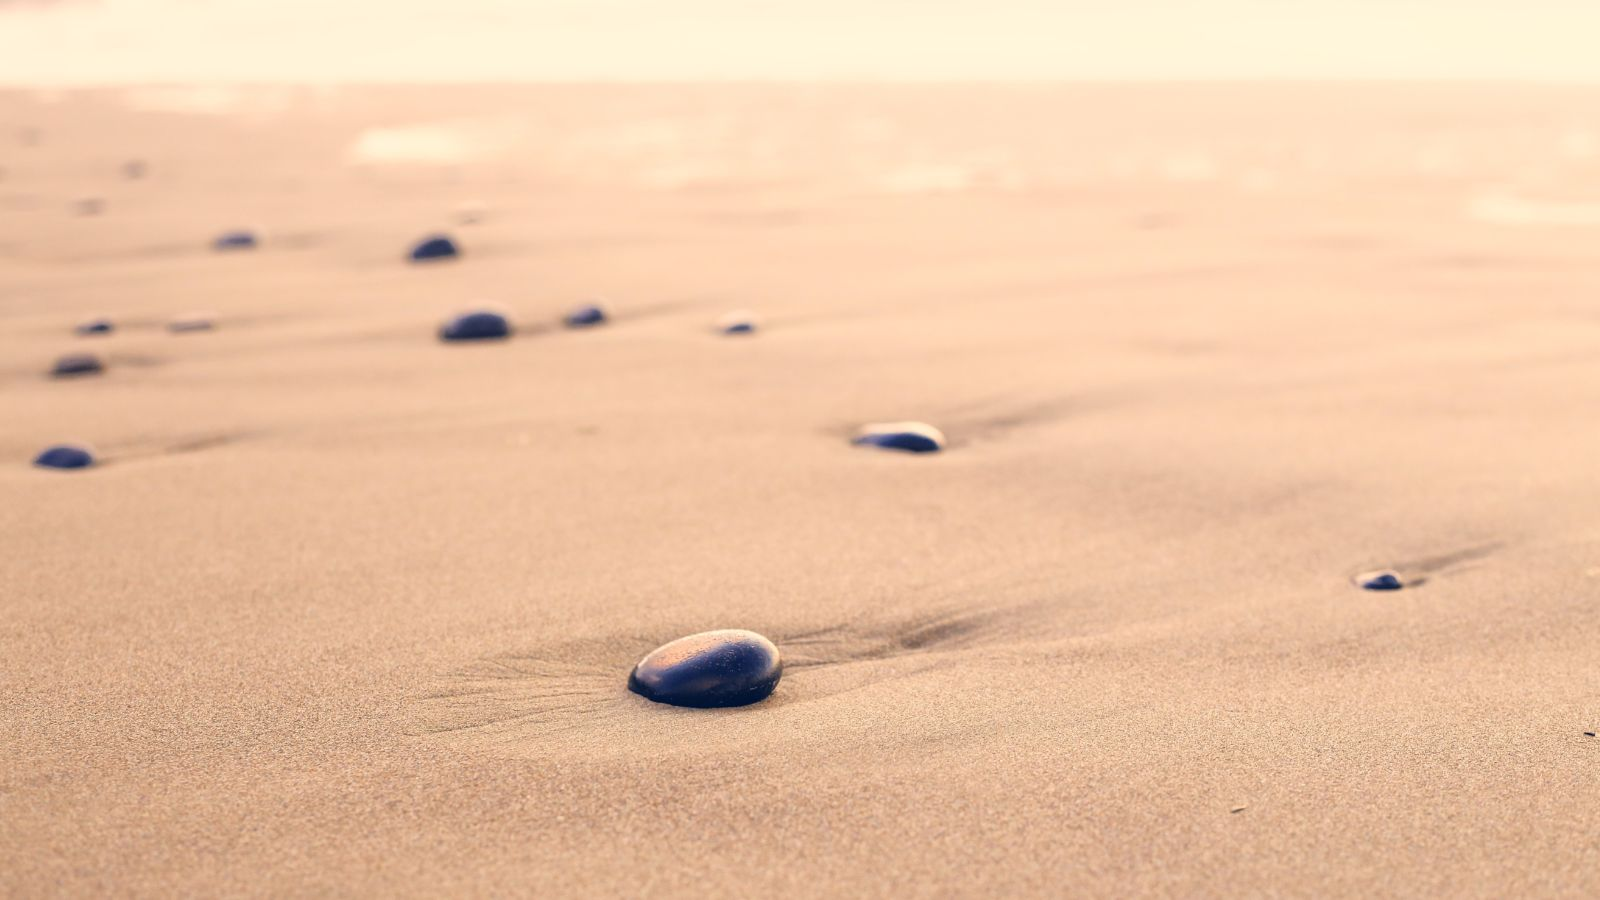 Onboarding New Leaders: The Critical First 100 Days